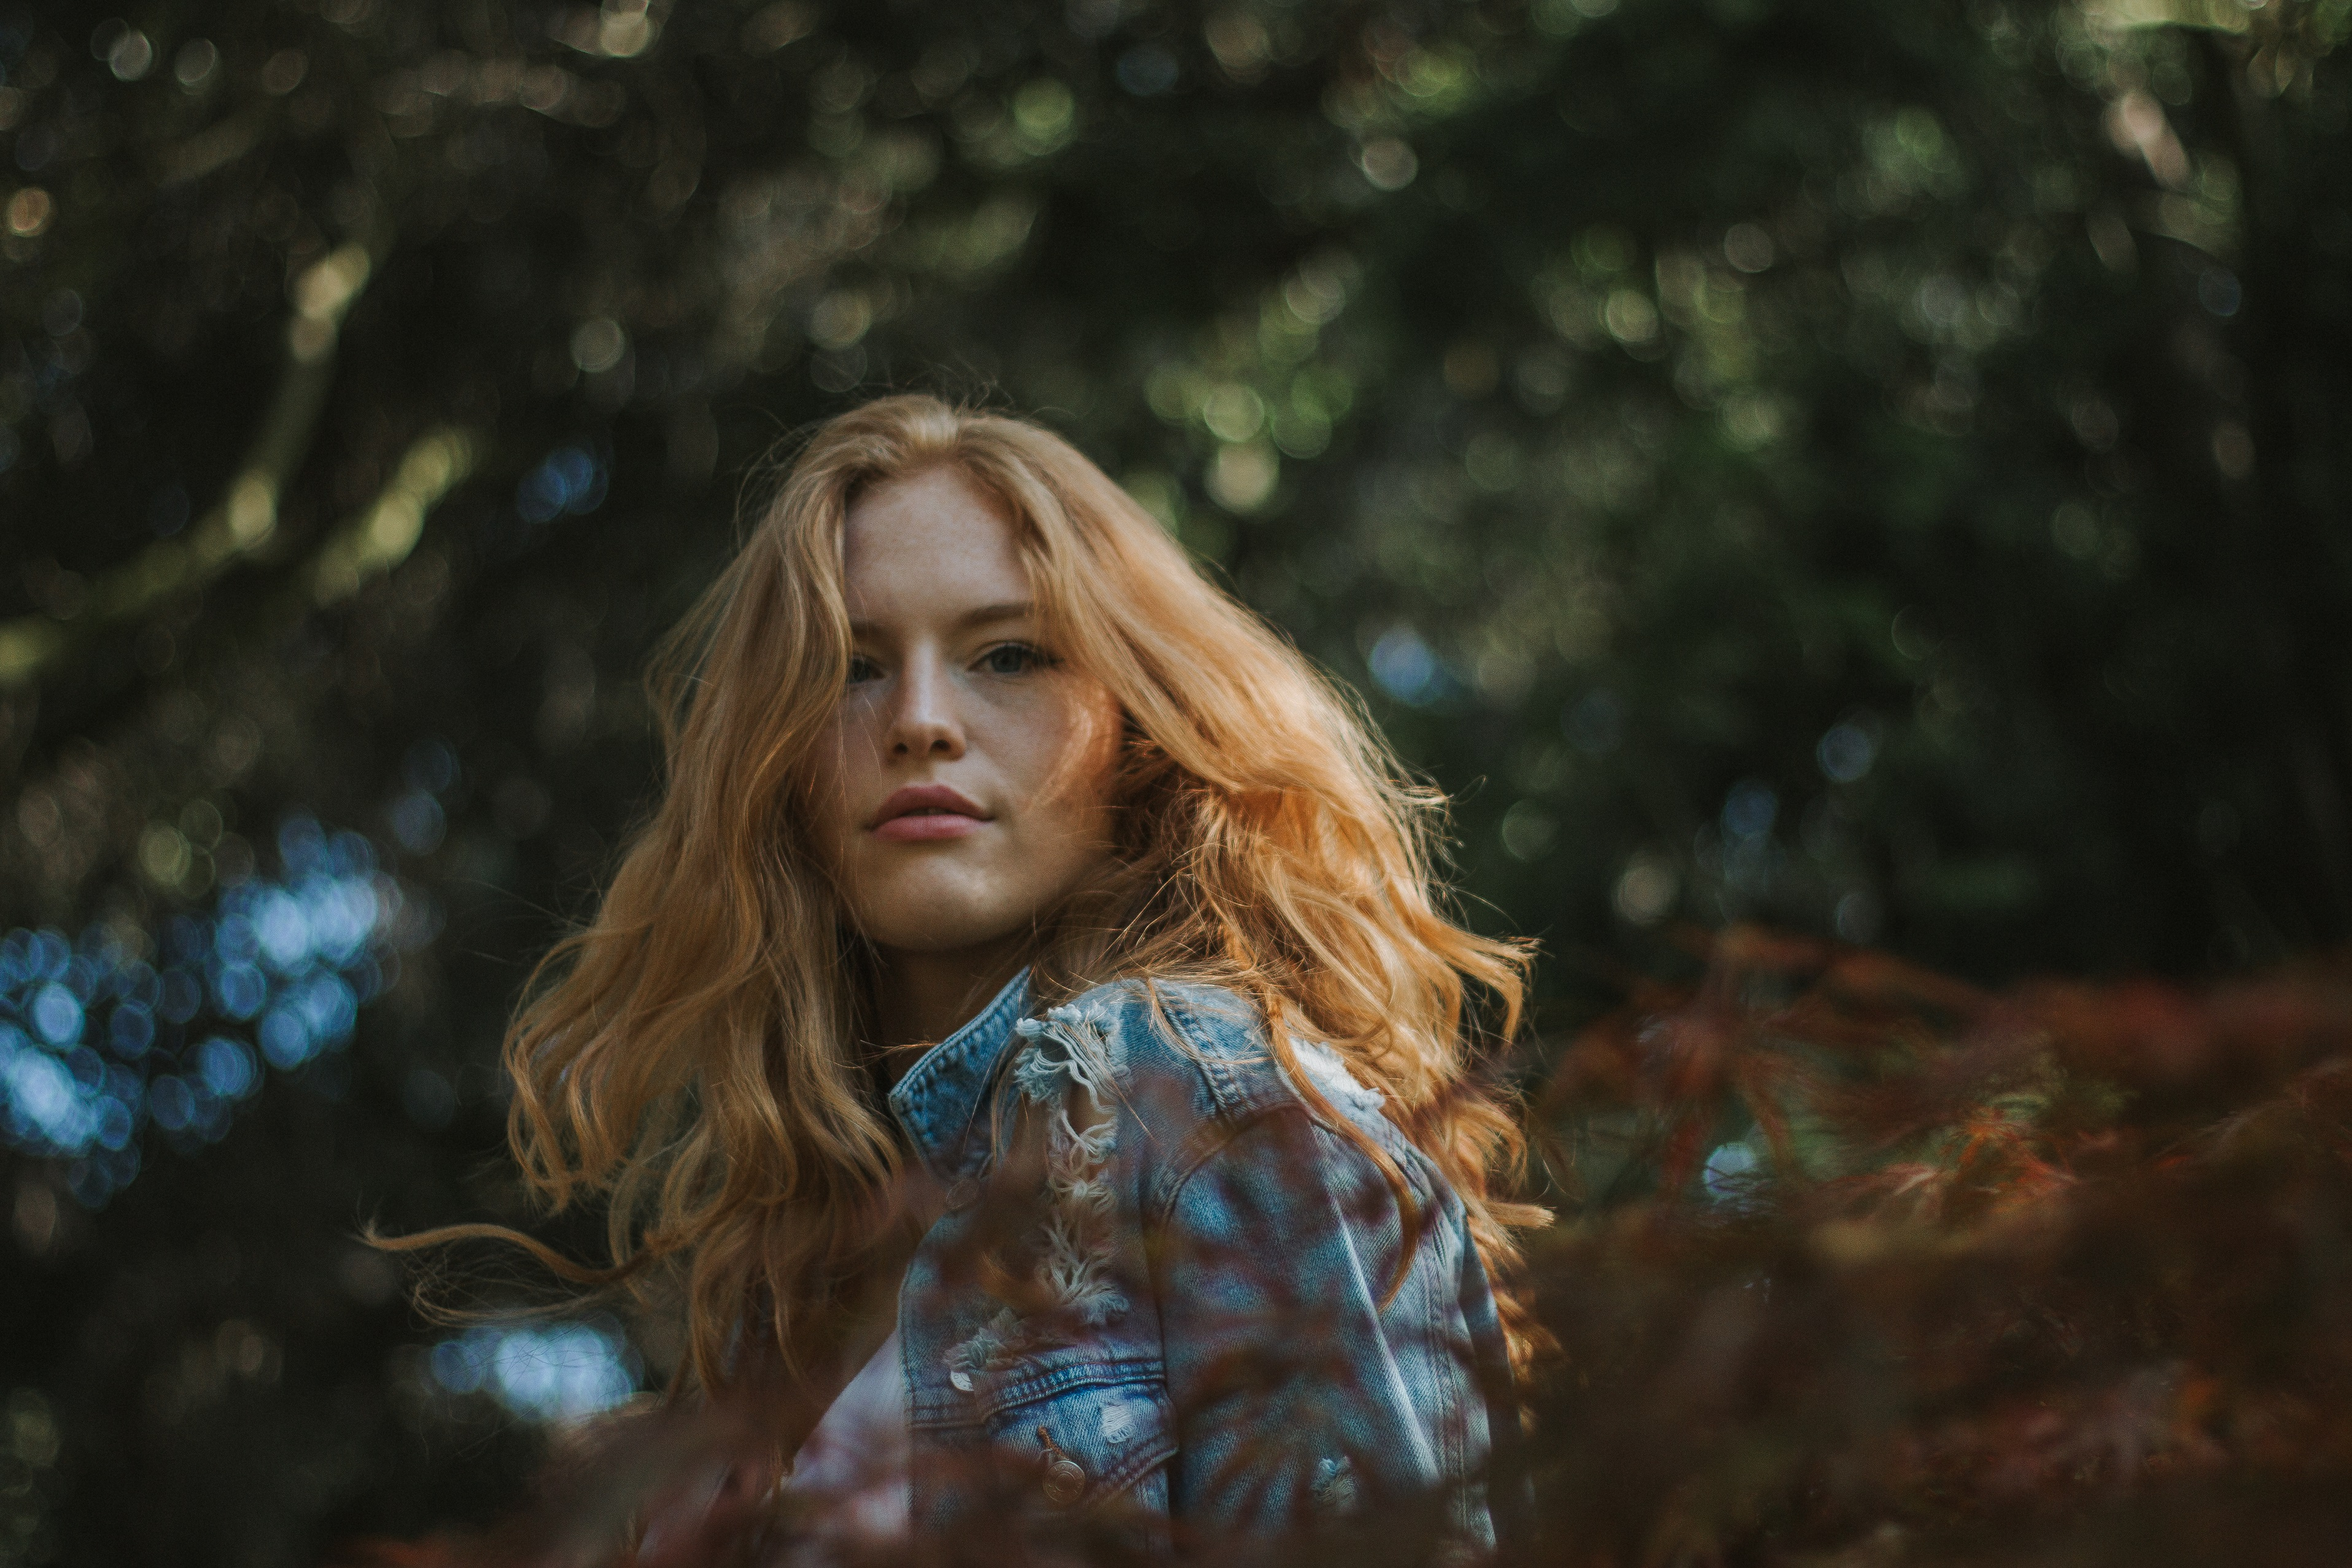 Faces To Watch: Freya Ridings 1